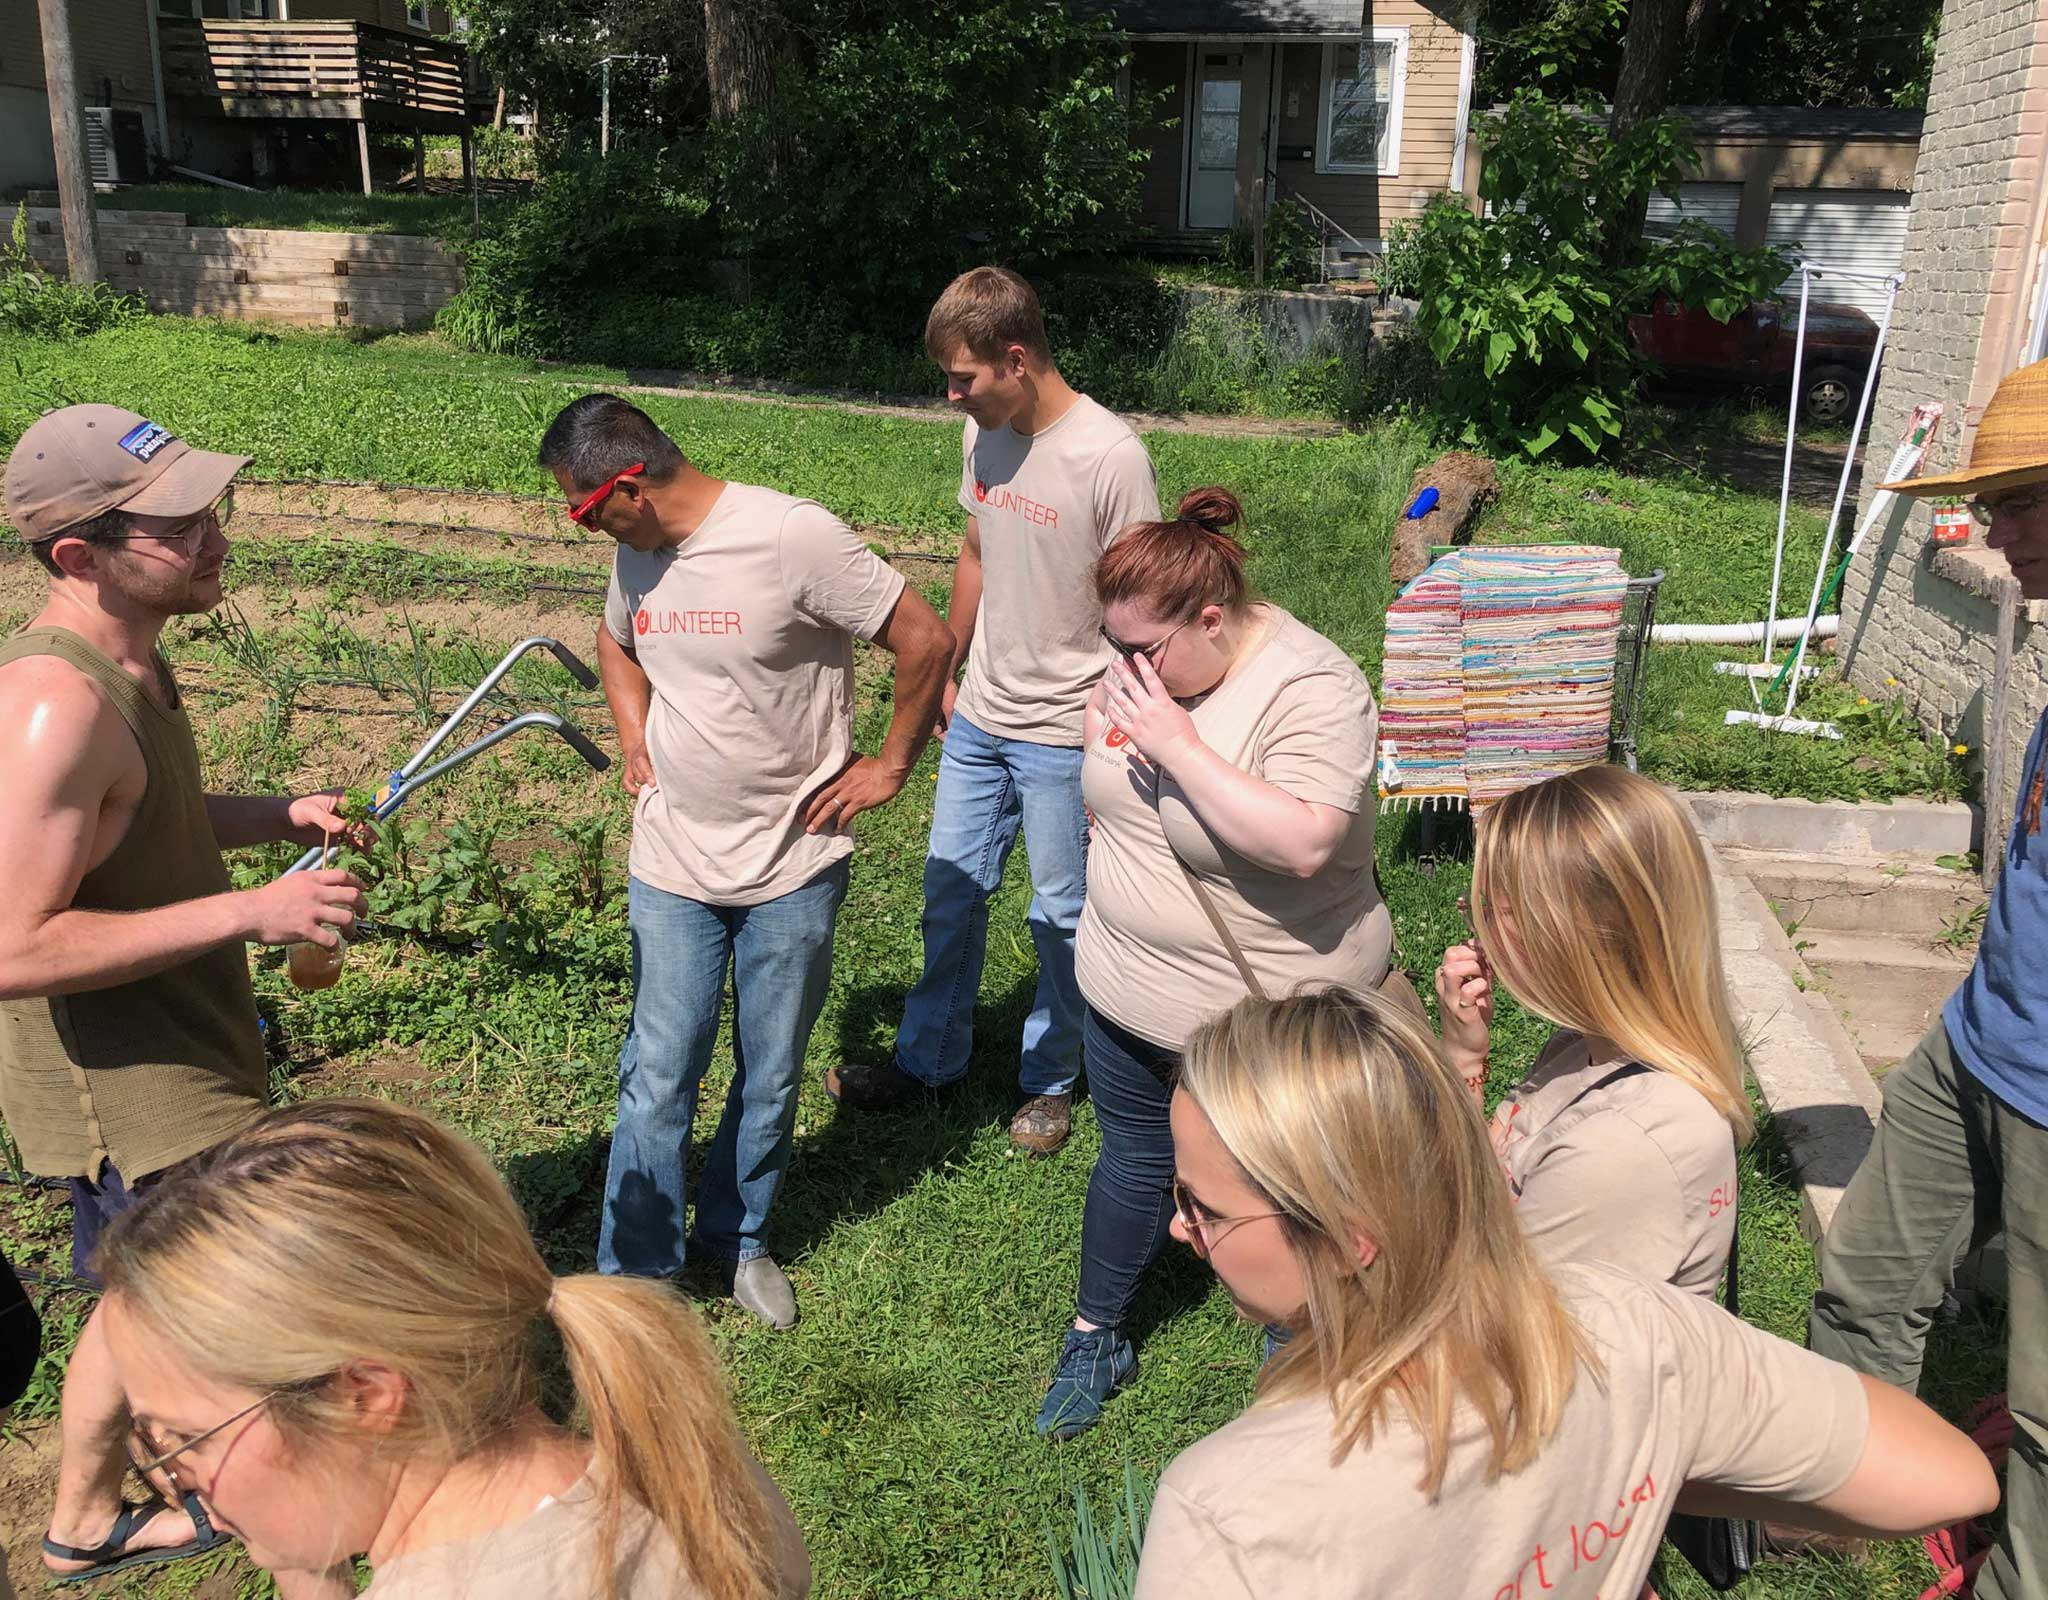 Employees at Big Muddy Urban Farm